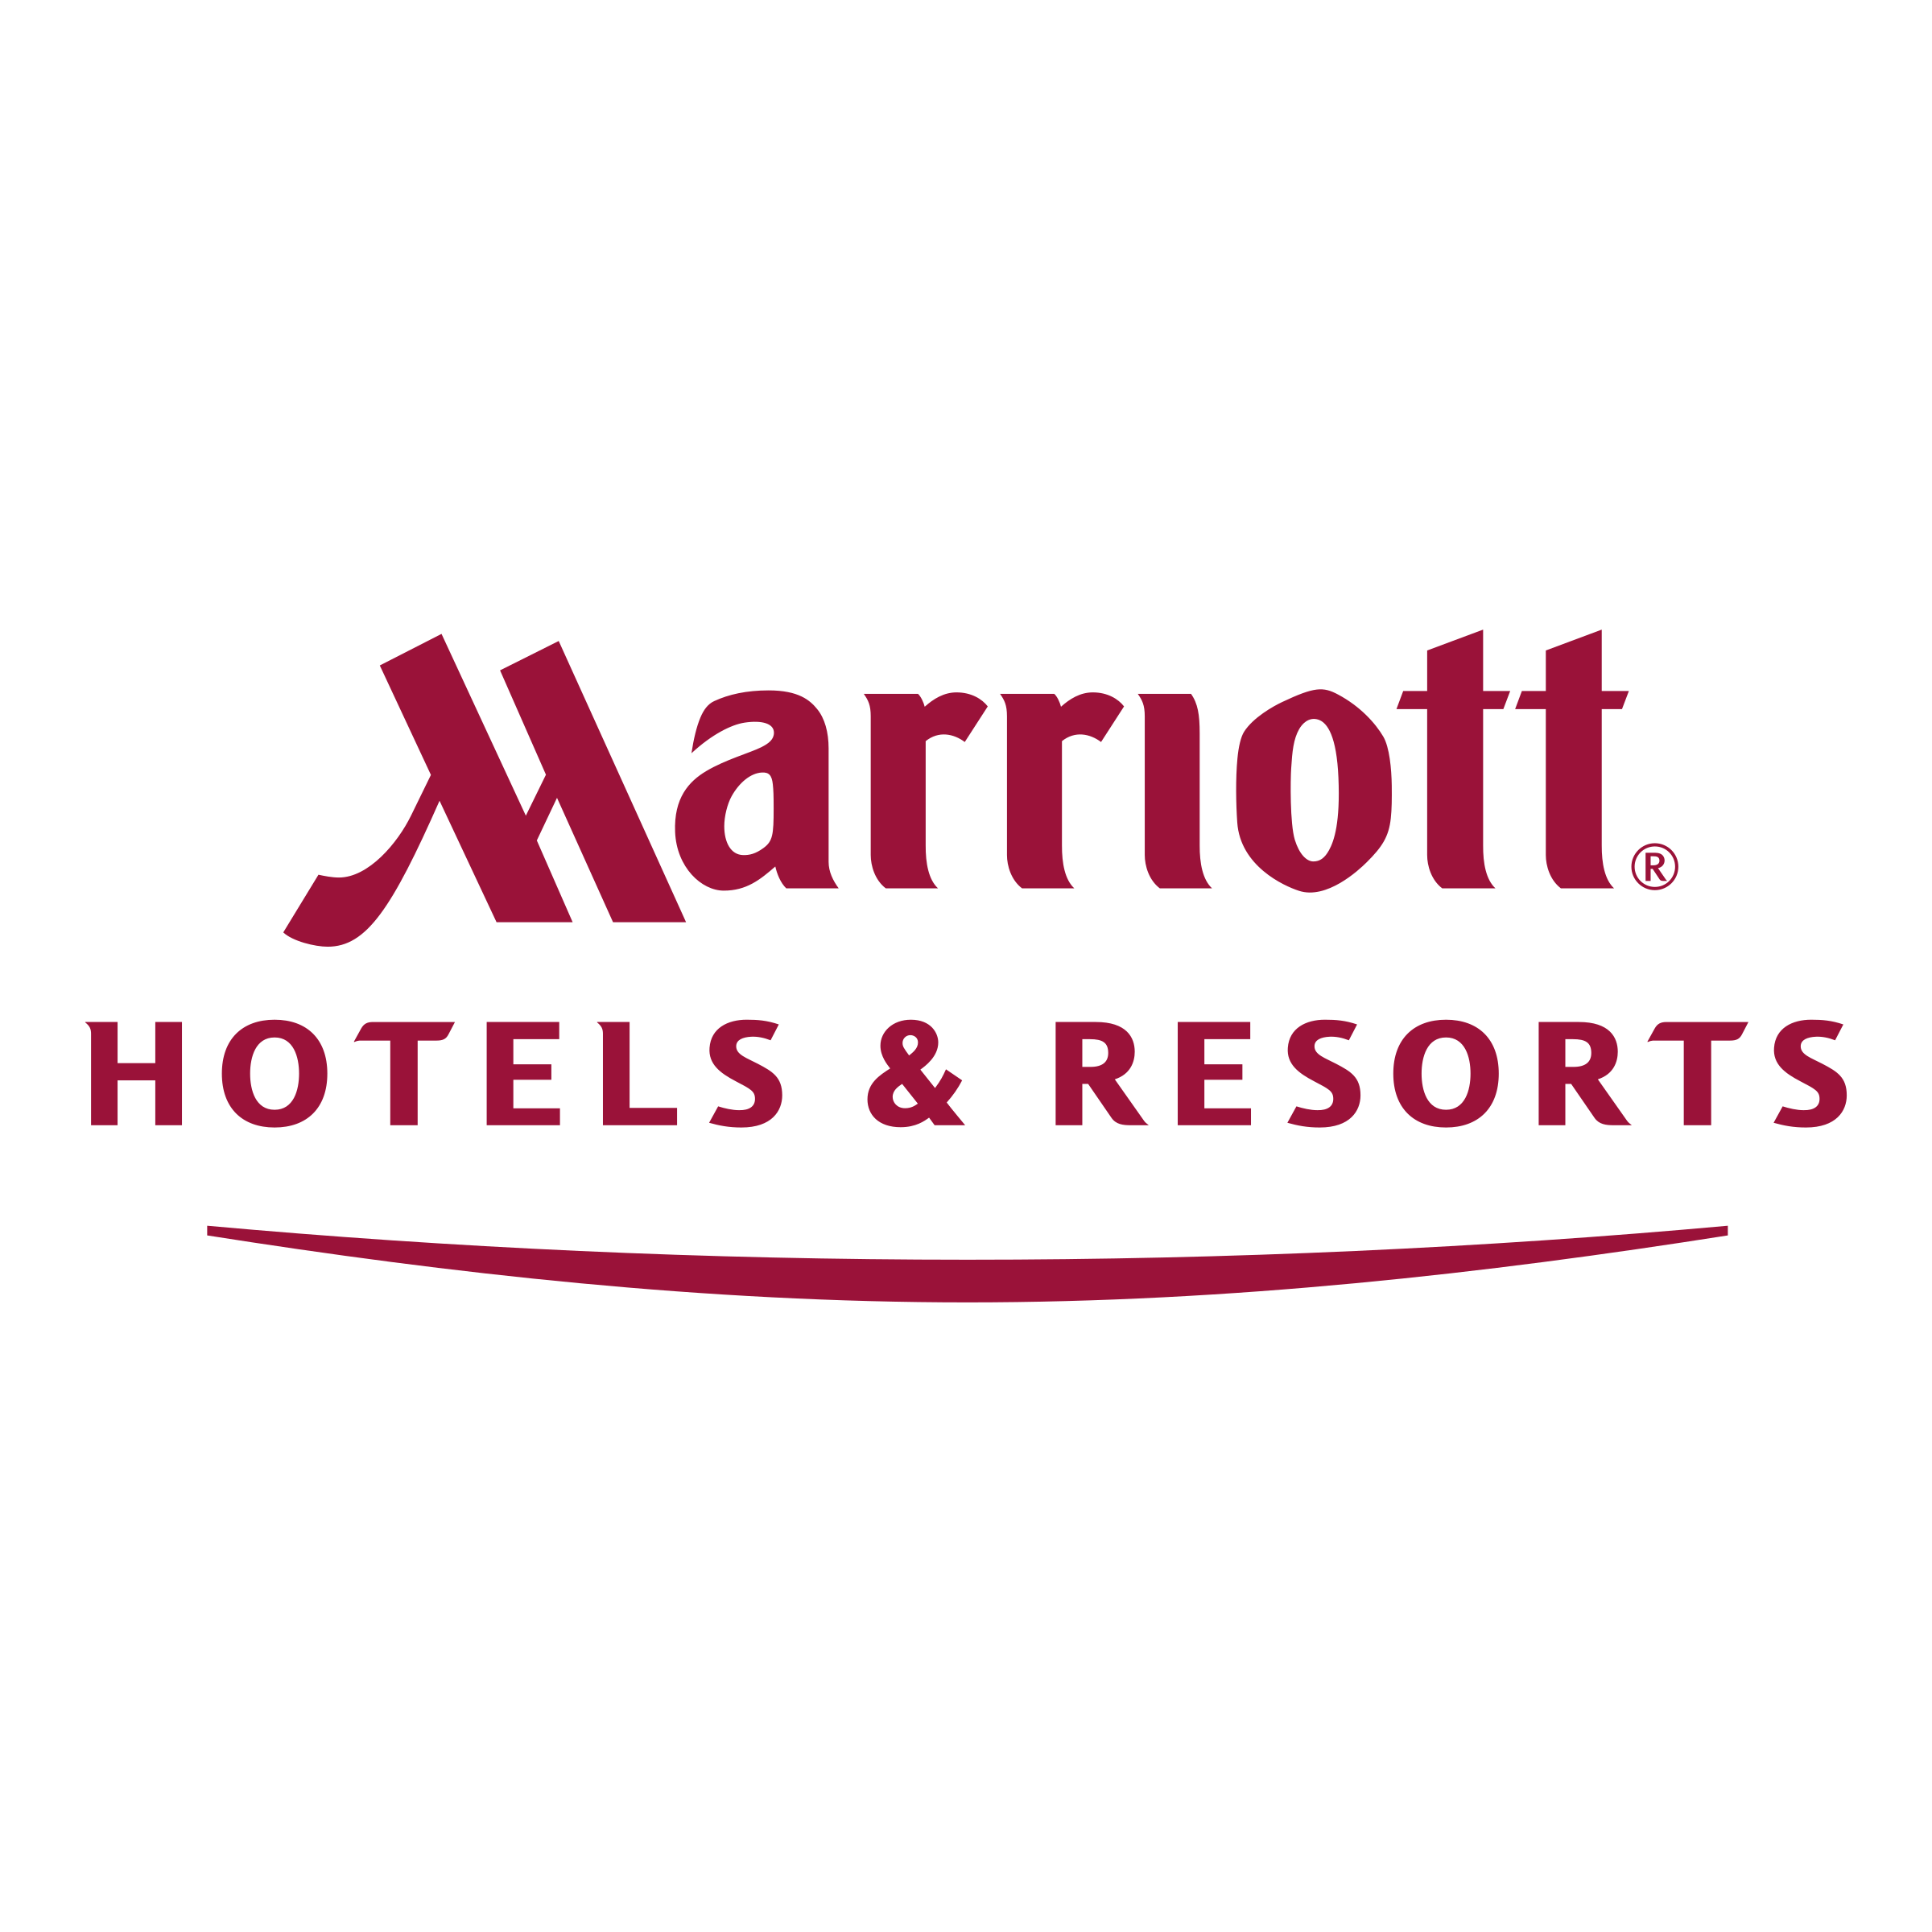 Image result for marriott hotel logo